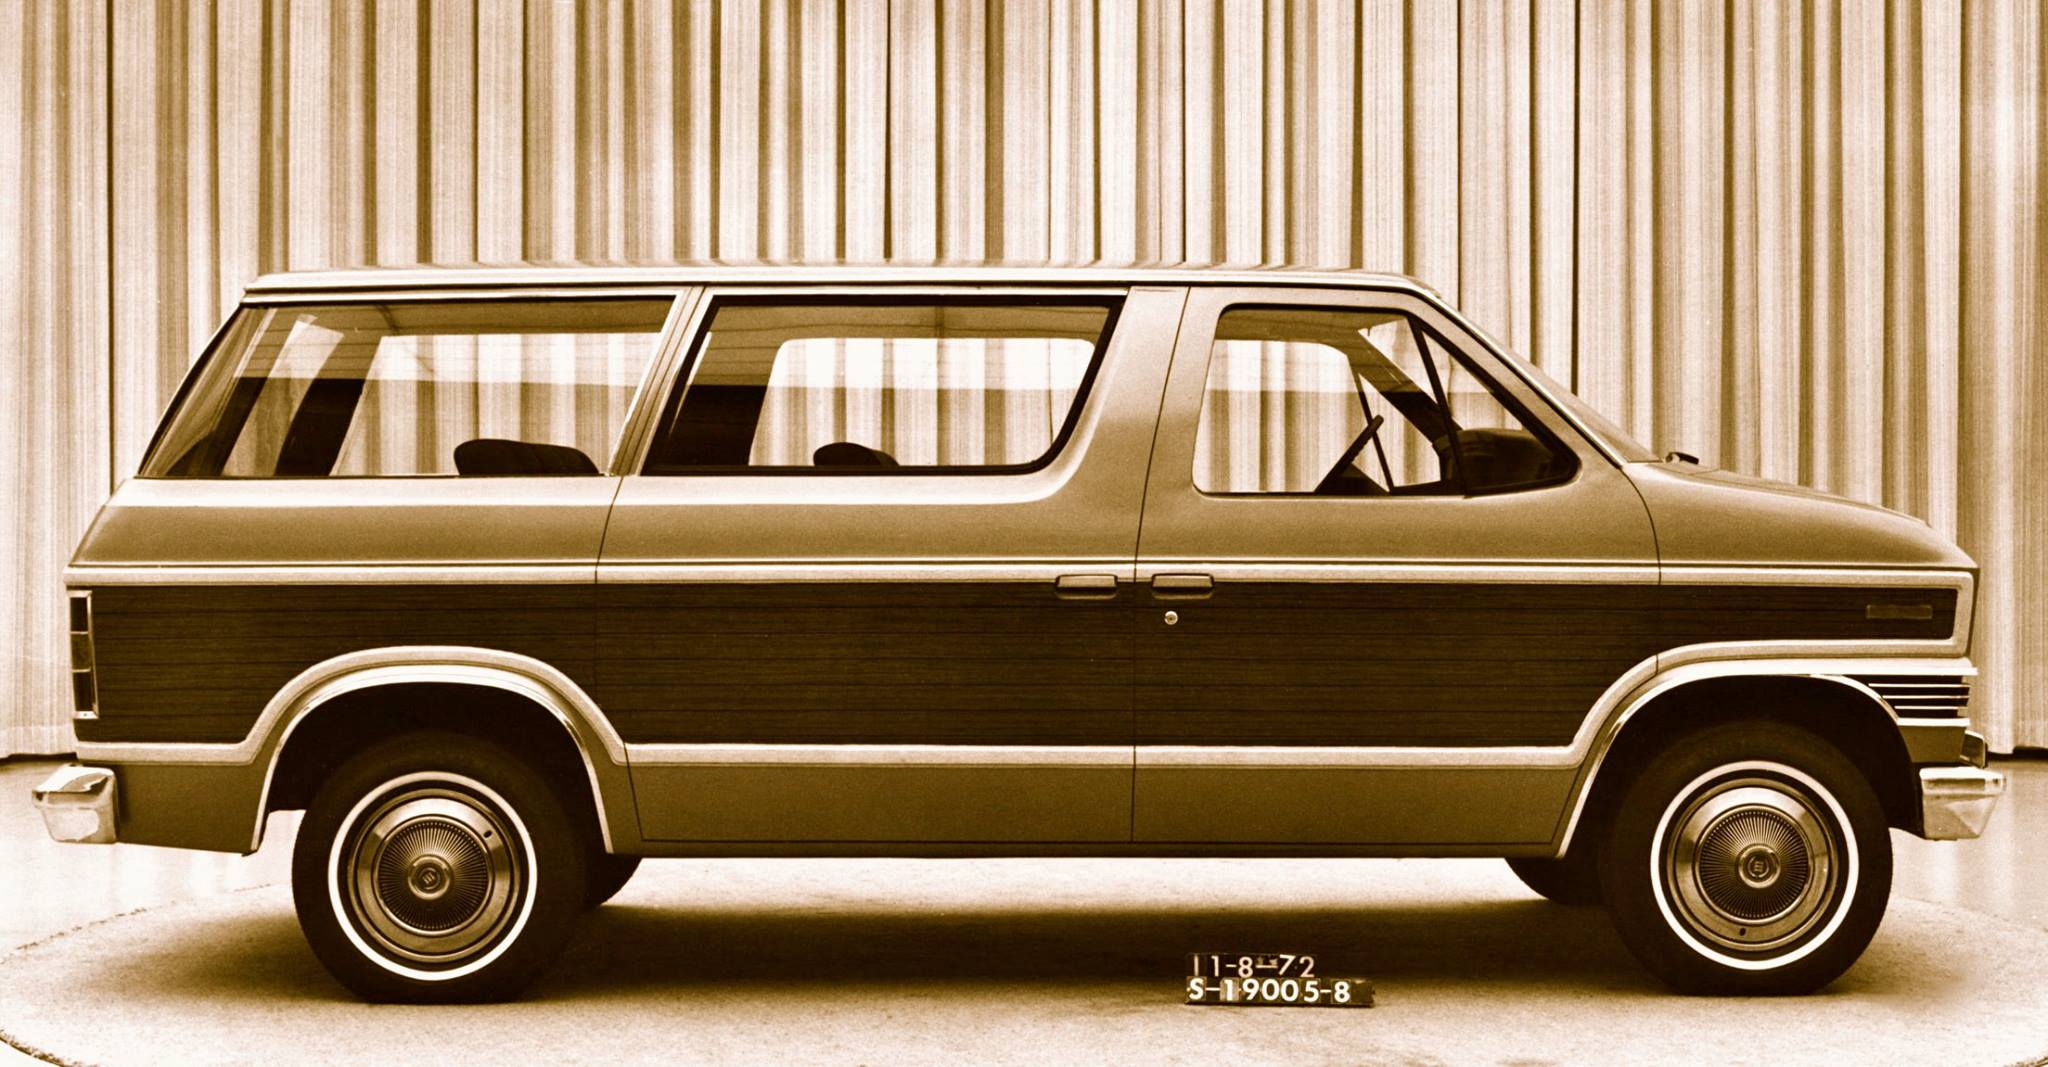 1972 Ford Carousel clay model side